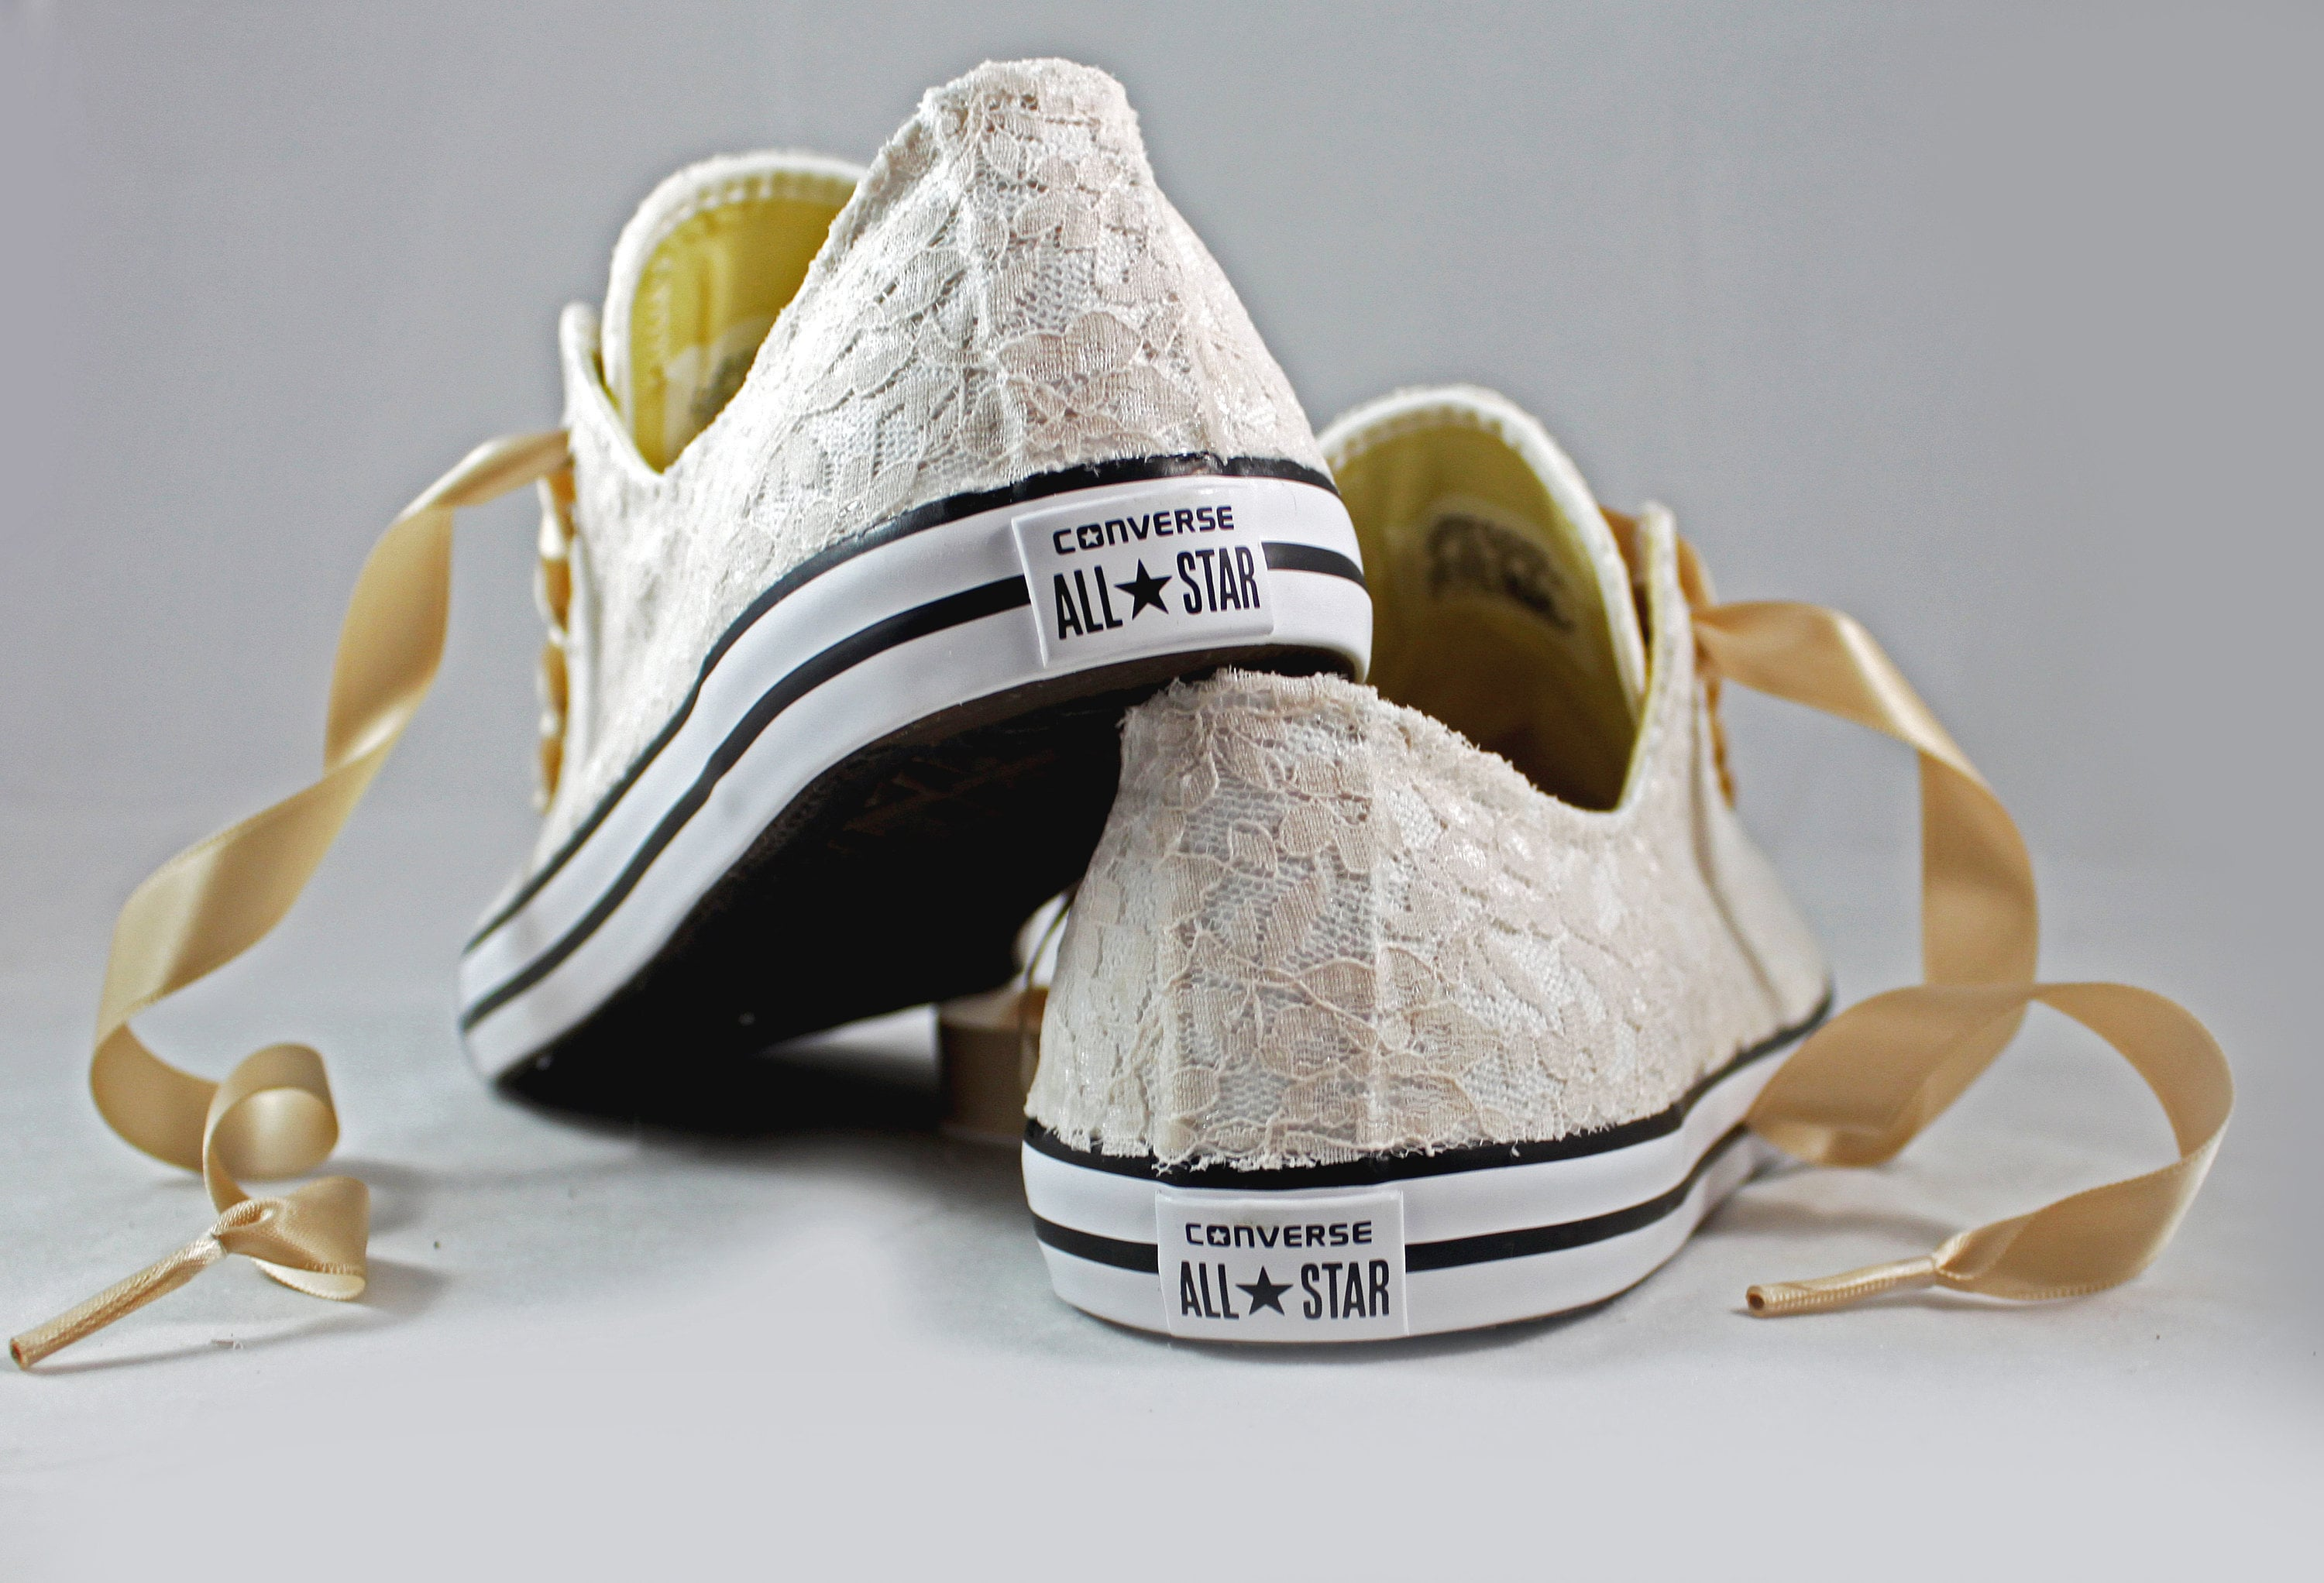 d330759ce760 Champagne lace wedding converse champagne lace bridal converses champagne  lace converse wedding tennis shoes jpg 3000x2044